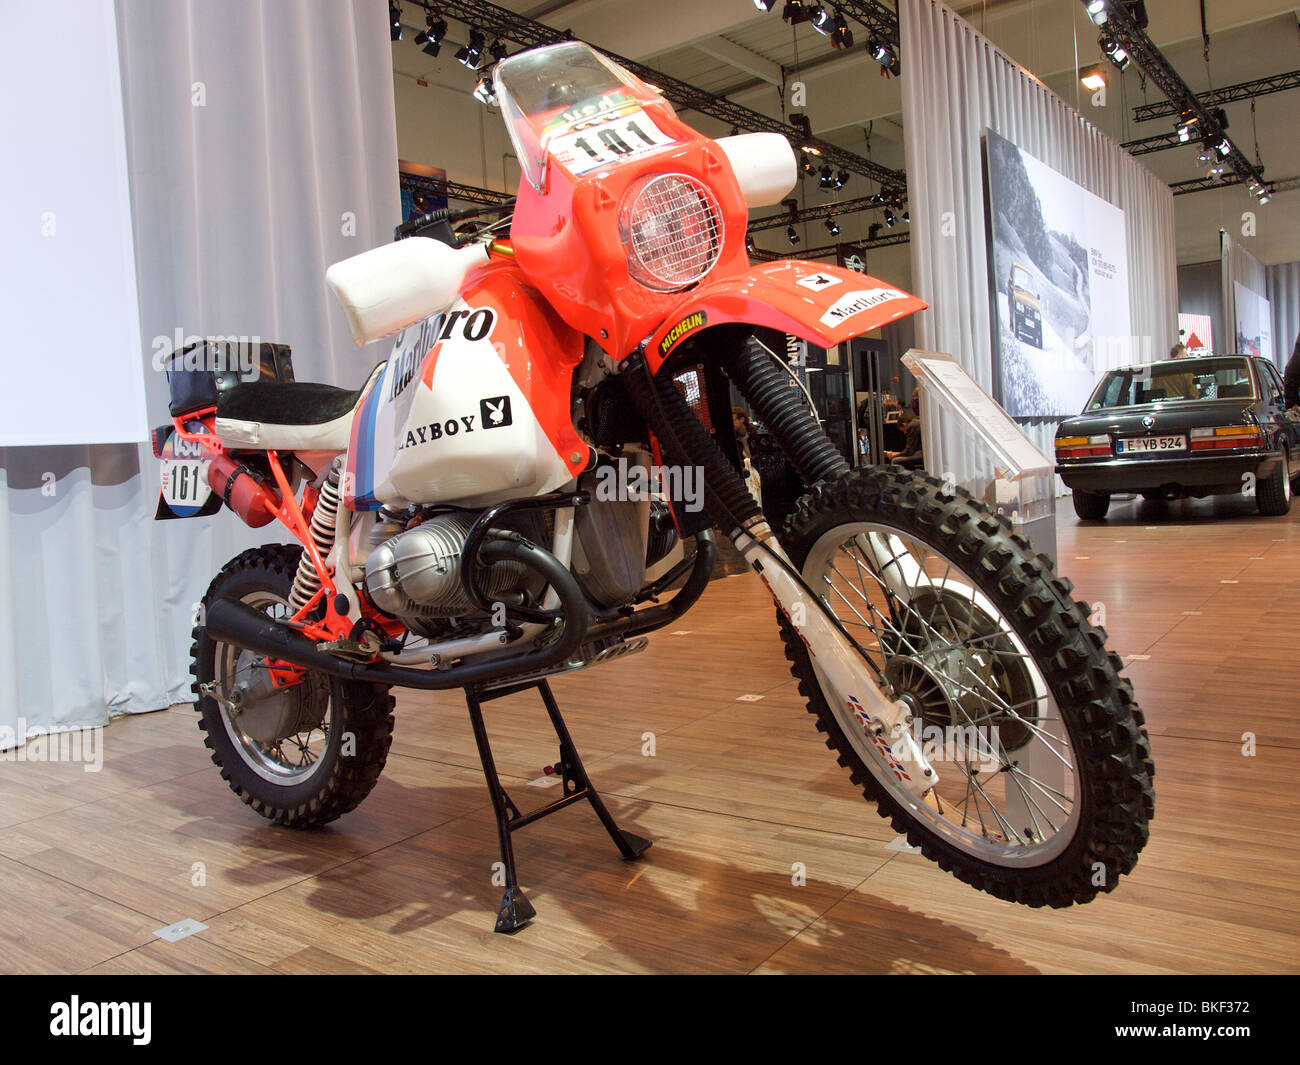 The BMW R80GS motorcycle used by Gaston Rahier in the 1985 Paris Dakar rallye - Stock Image